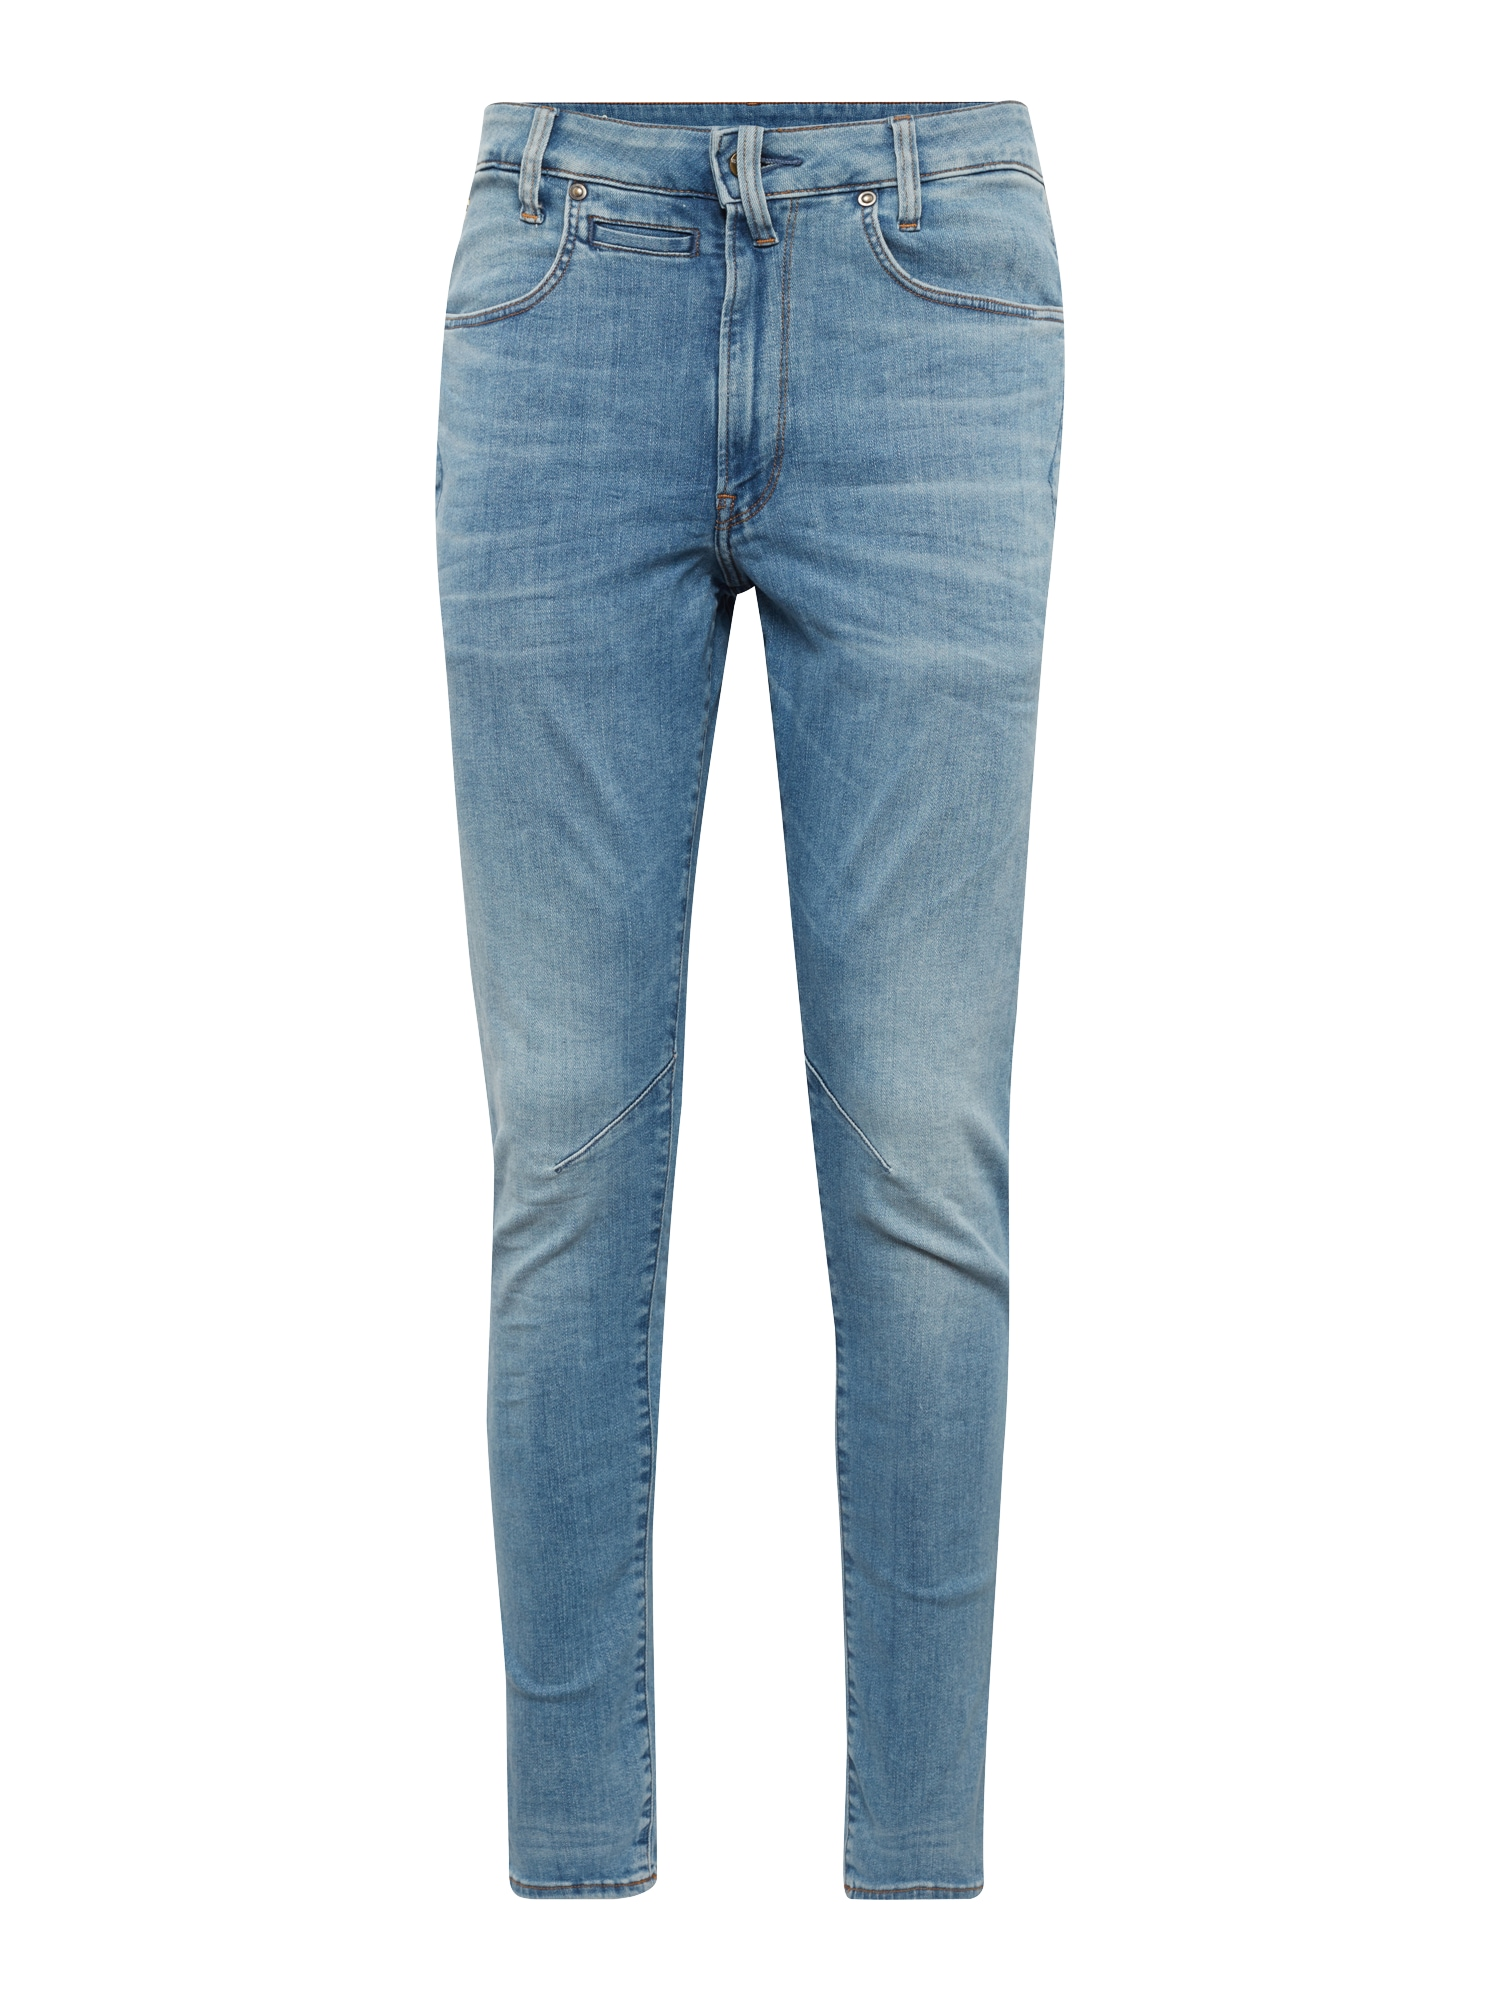 G-STAR RAW Heren Jeans D-Staq 3D Super Slim jeans blue denim